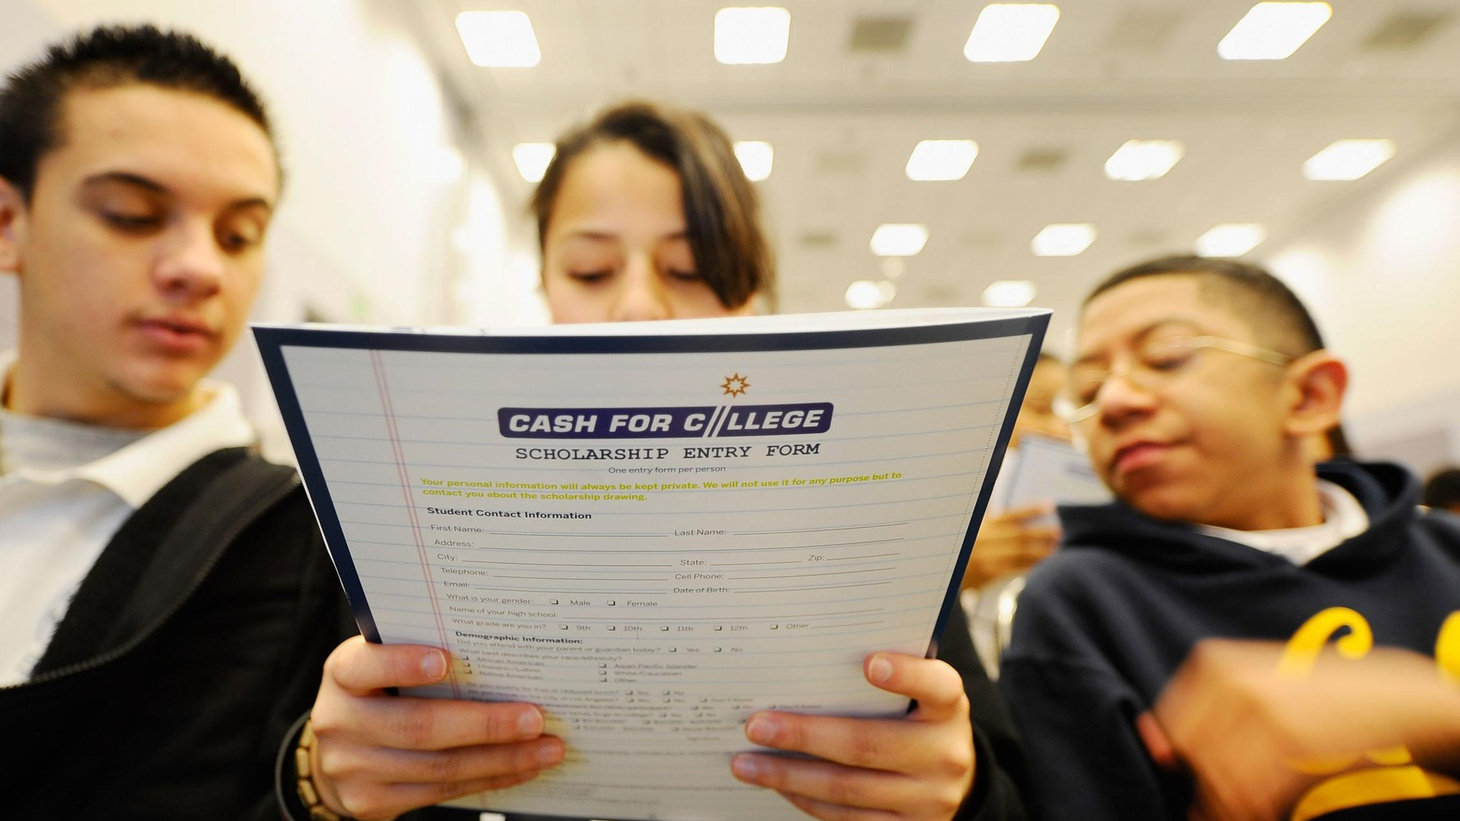 When public community colleges are full, private for-profit colleges are an alternative. But they're costly and require federal loans that students often can't repay.